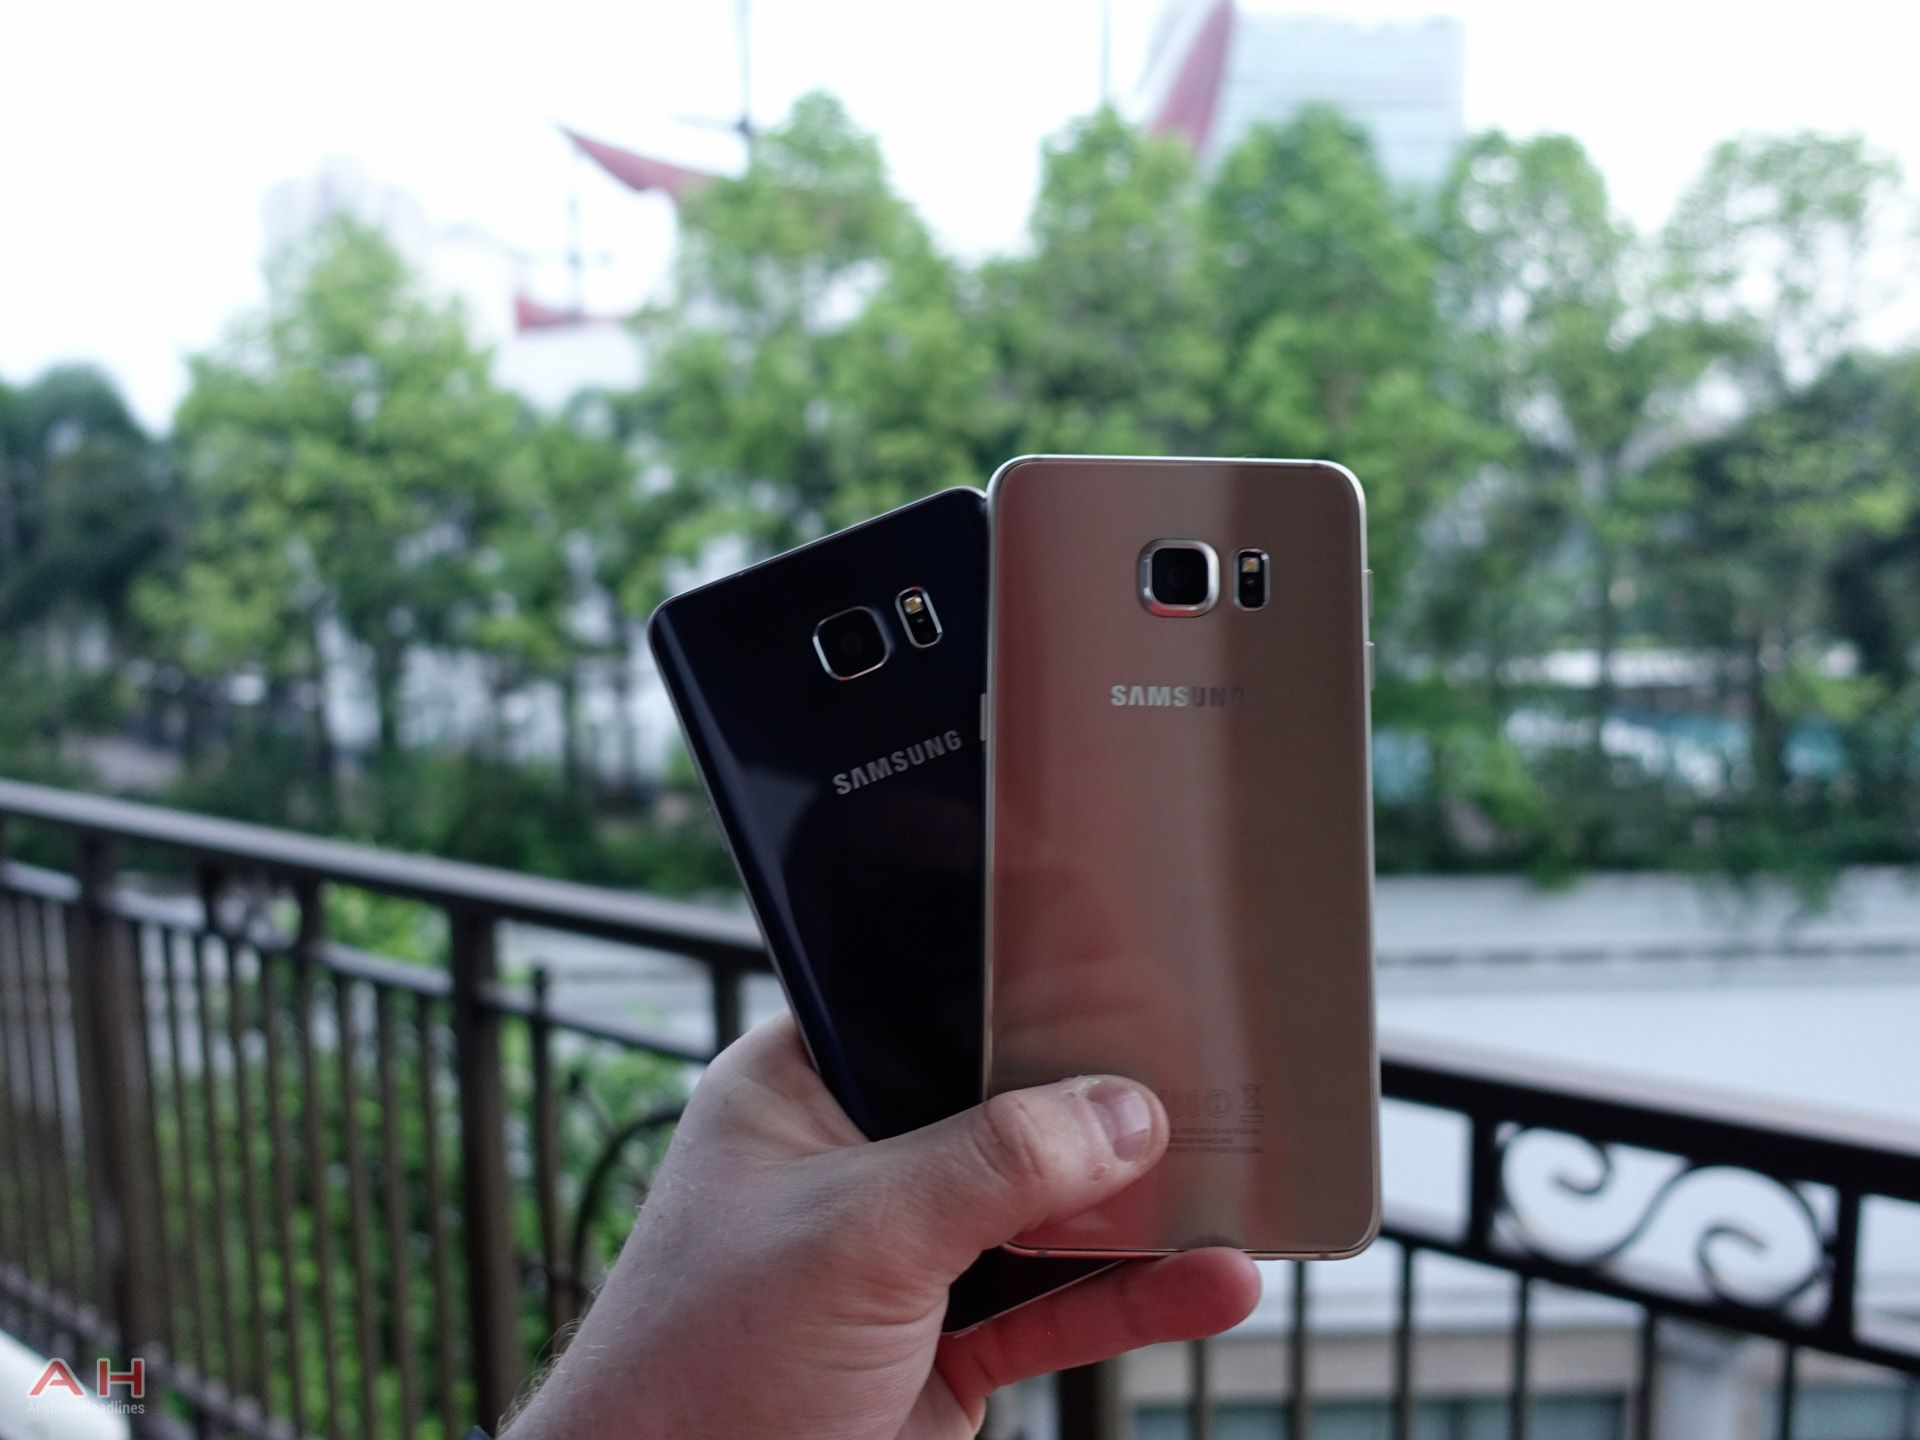 Israeli Carriers Avoid Buying New Devices From Samsung